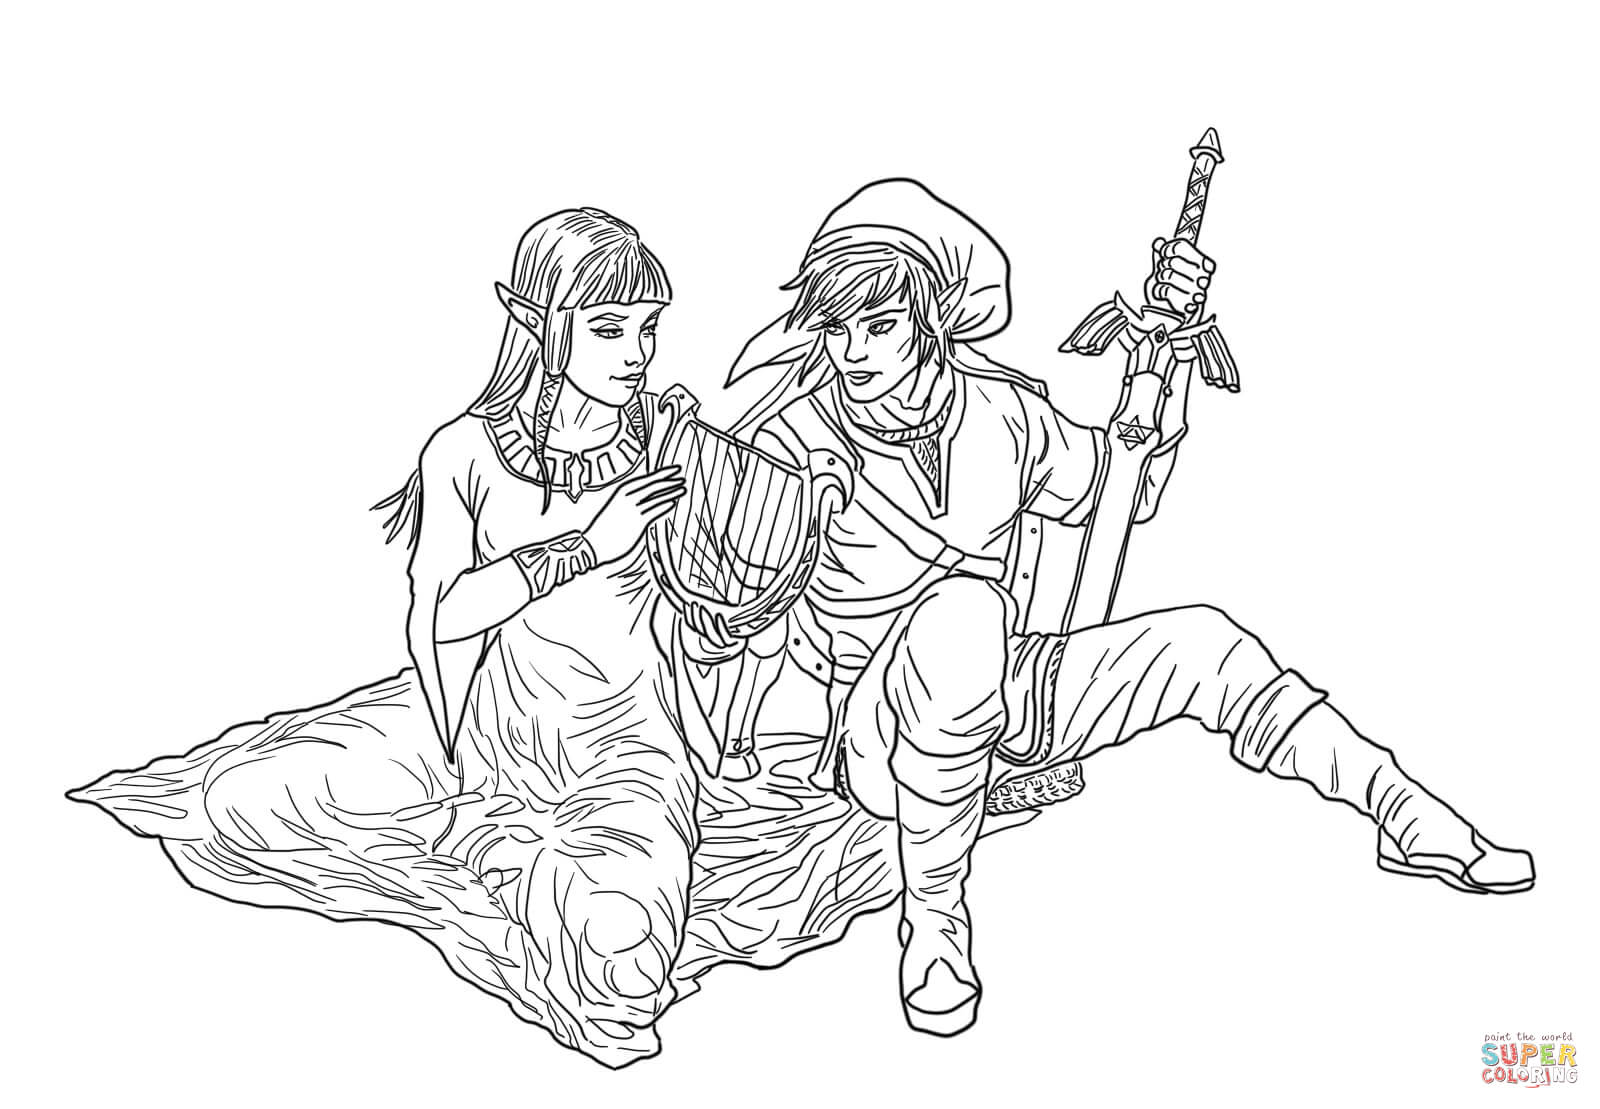 Link and Zelda coloring page | Free Printable Coloring Pages